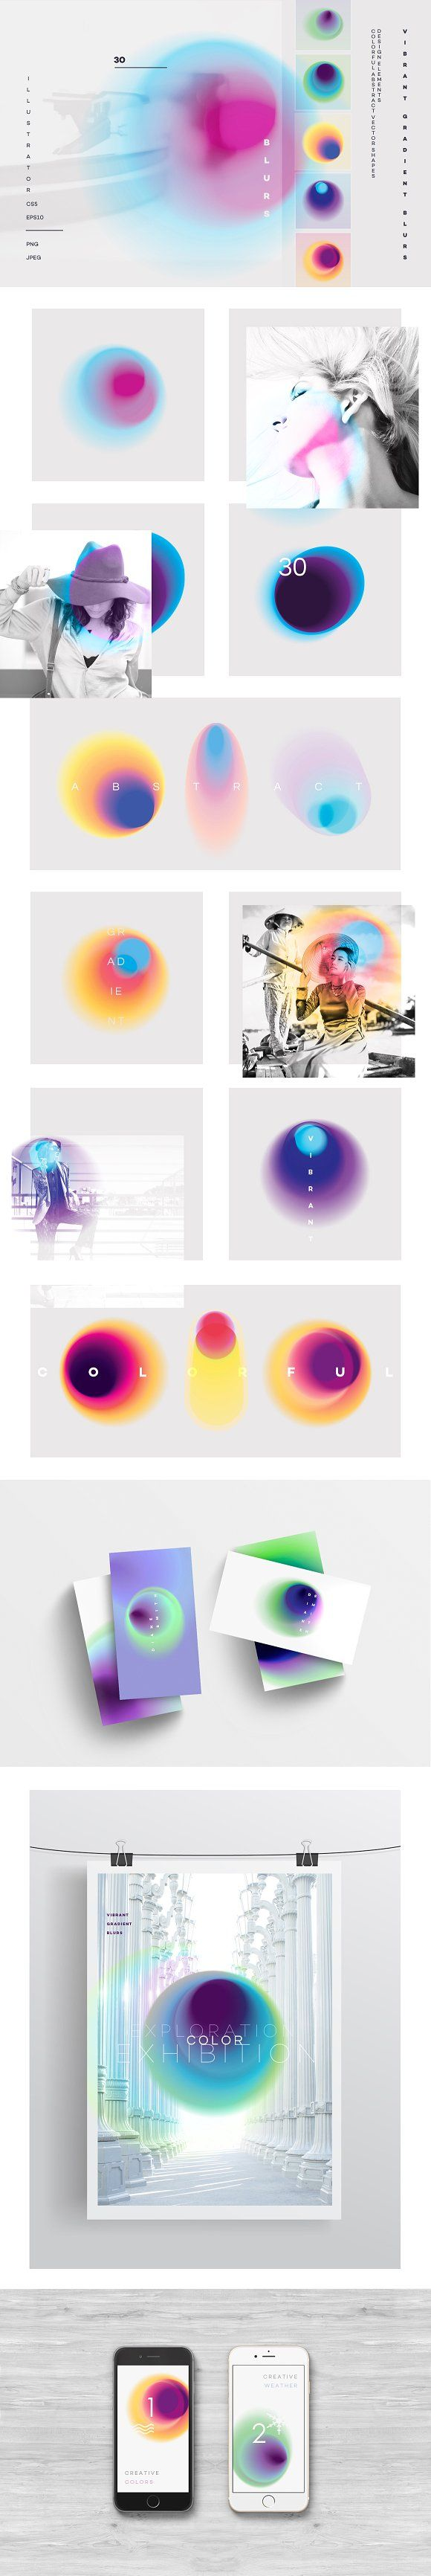 Vibrant gradient blurs by Polar Vectors on @creativemarket